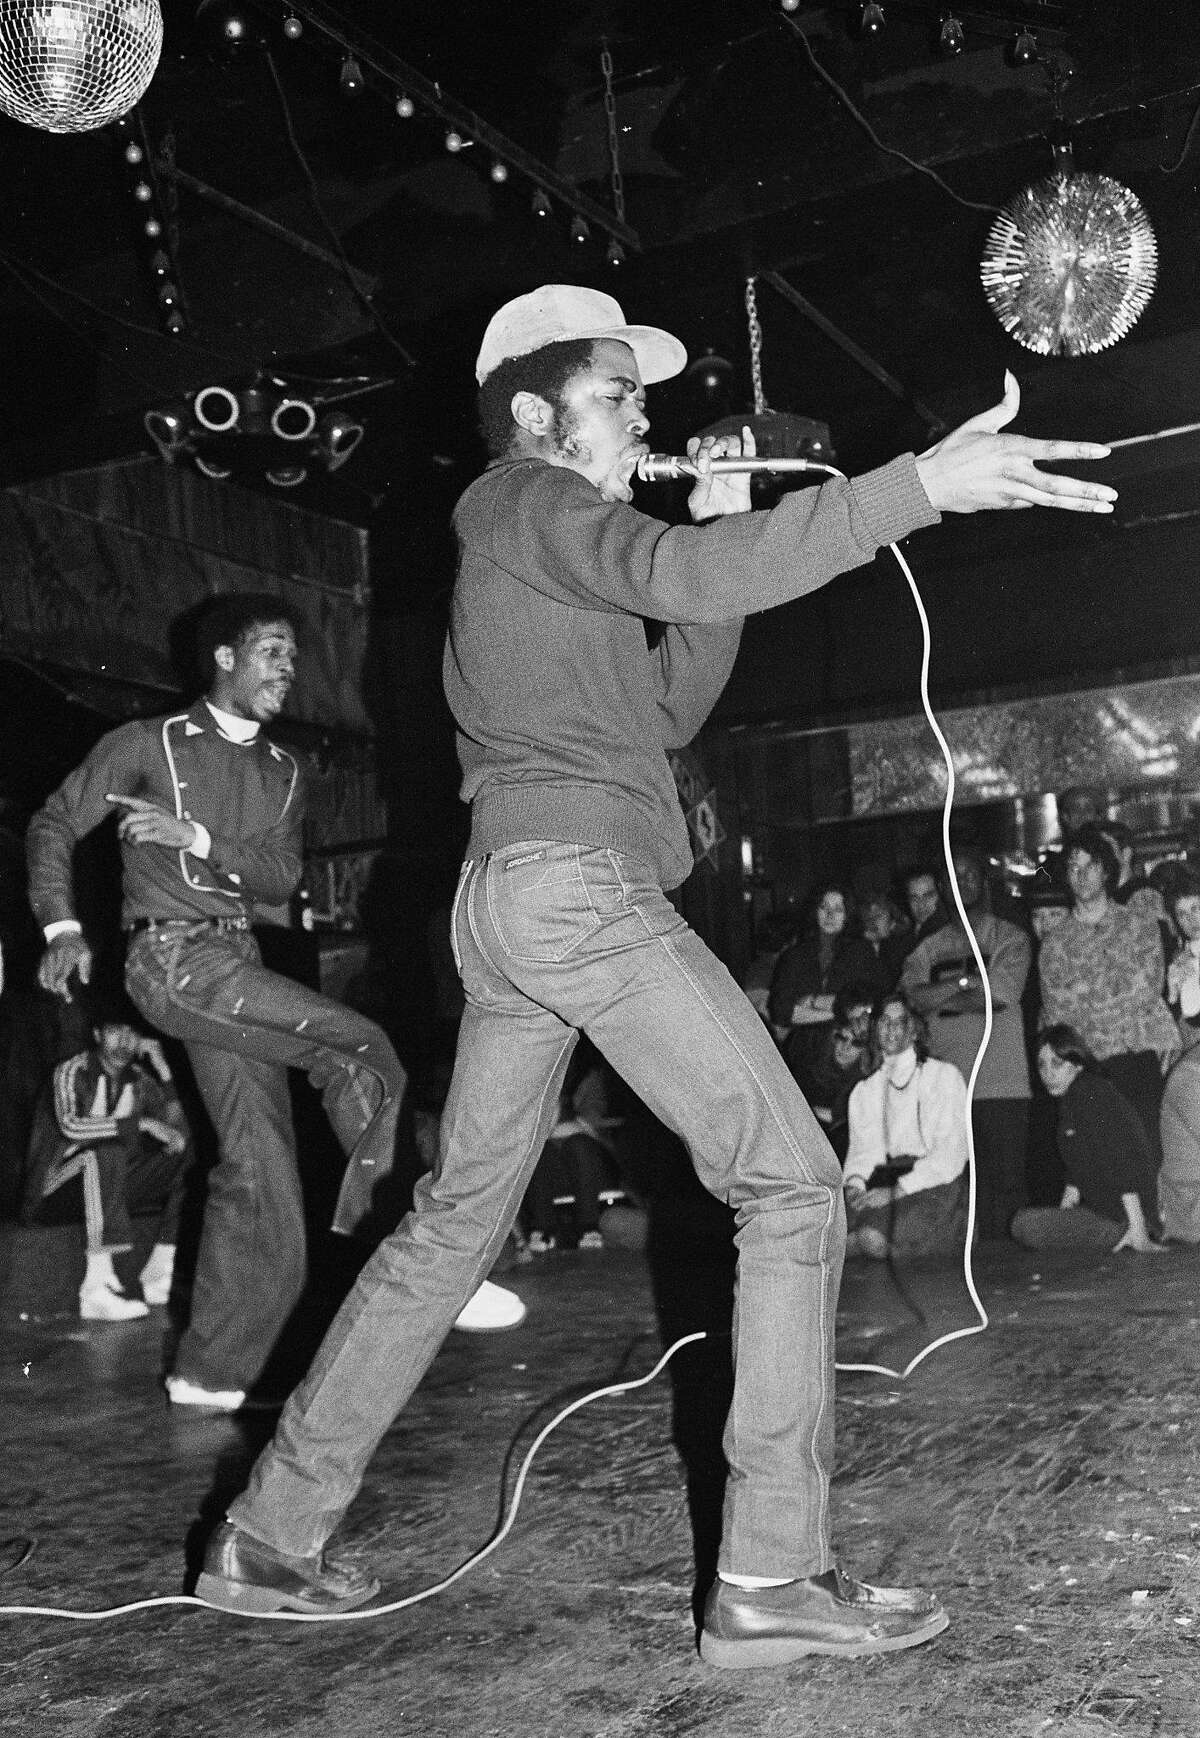 """Oakland Museum of California presents """"Respect: Hip-Hop Style & Wisdom,"""" Joe Conzo, JDL (Jerry D. Lewis) of Cold Crush Brothers at Club Negril, 1981. Photo print. Courtesy of the Joe Conzo Archives."""